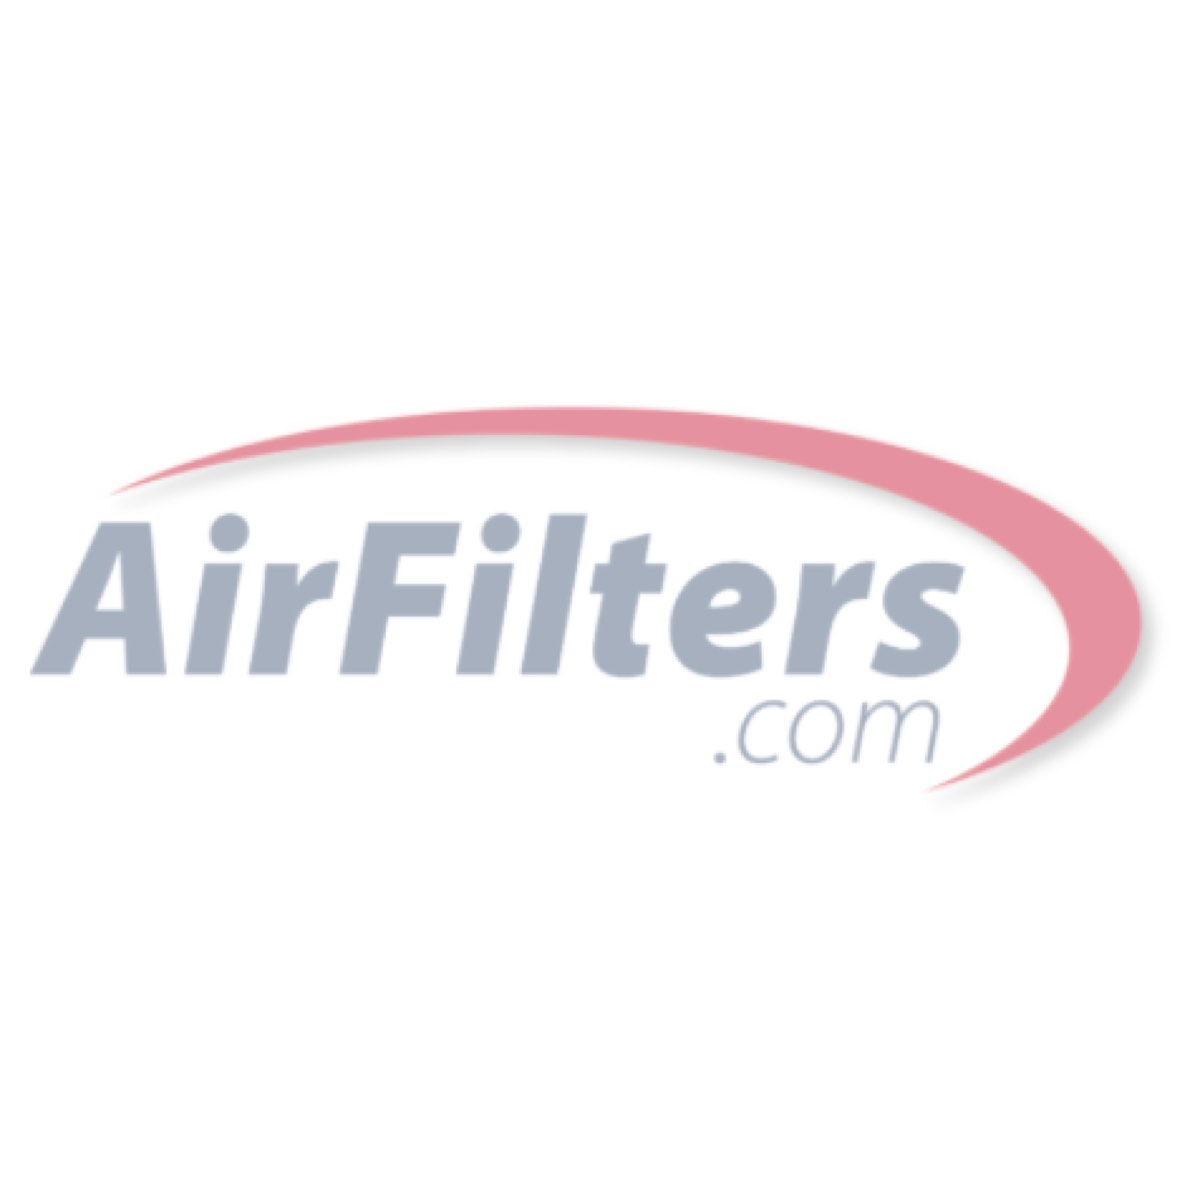 Electro-Air® 16x22x5 Furnace Filters by Accumulair®